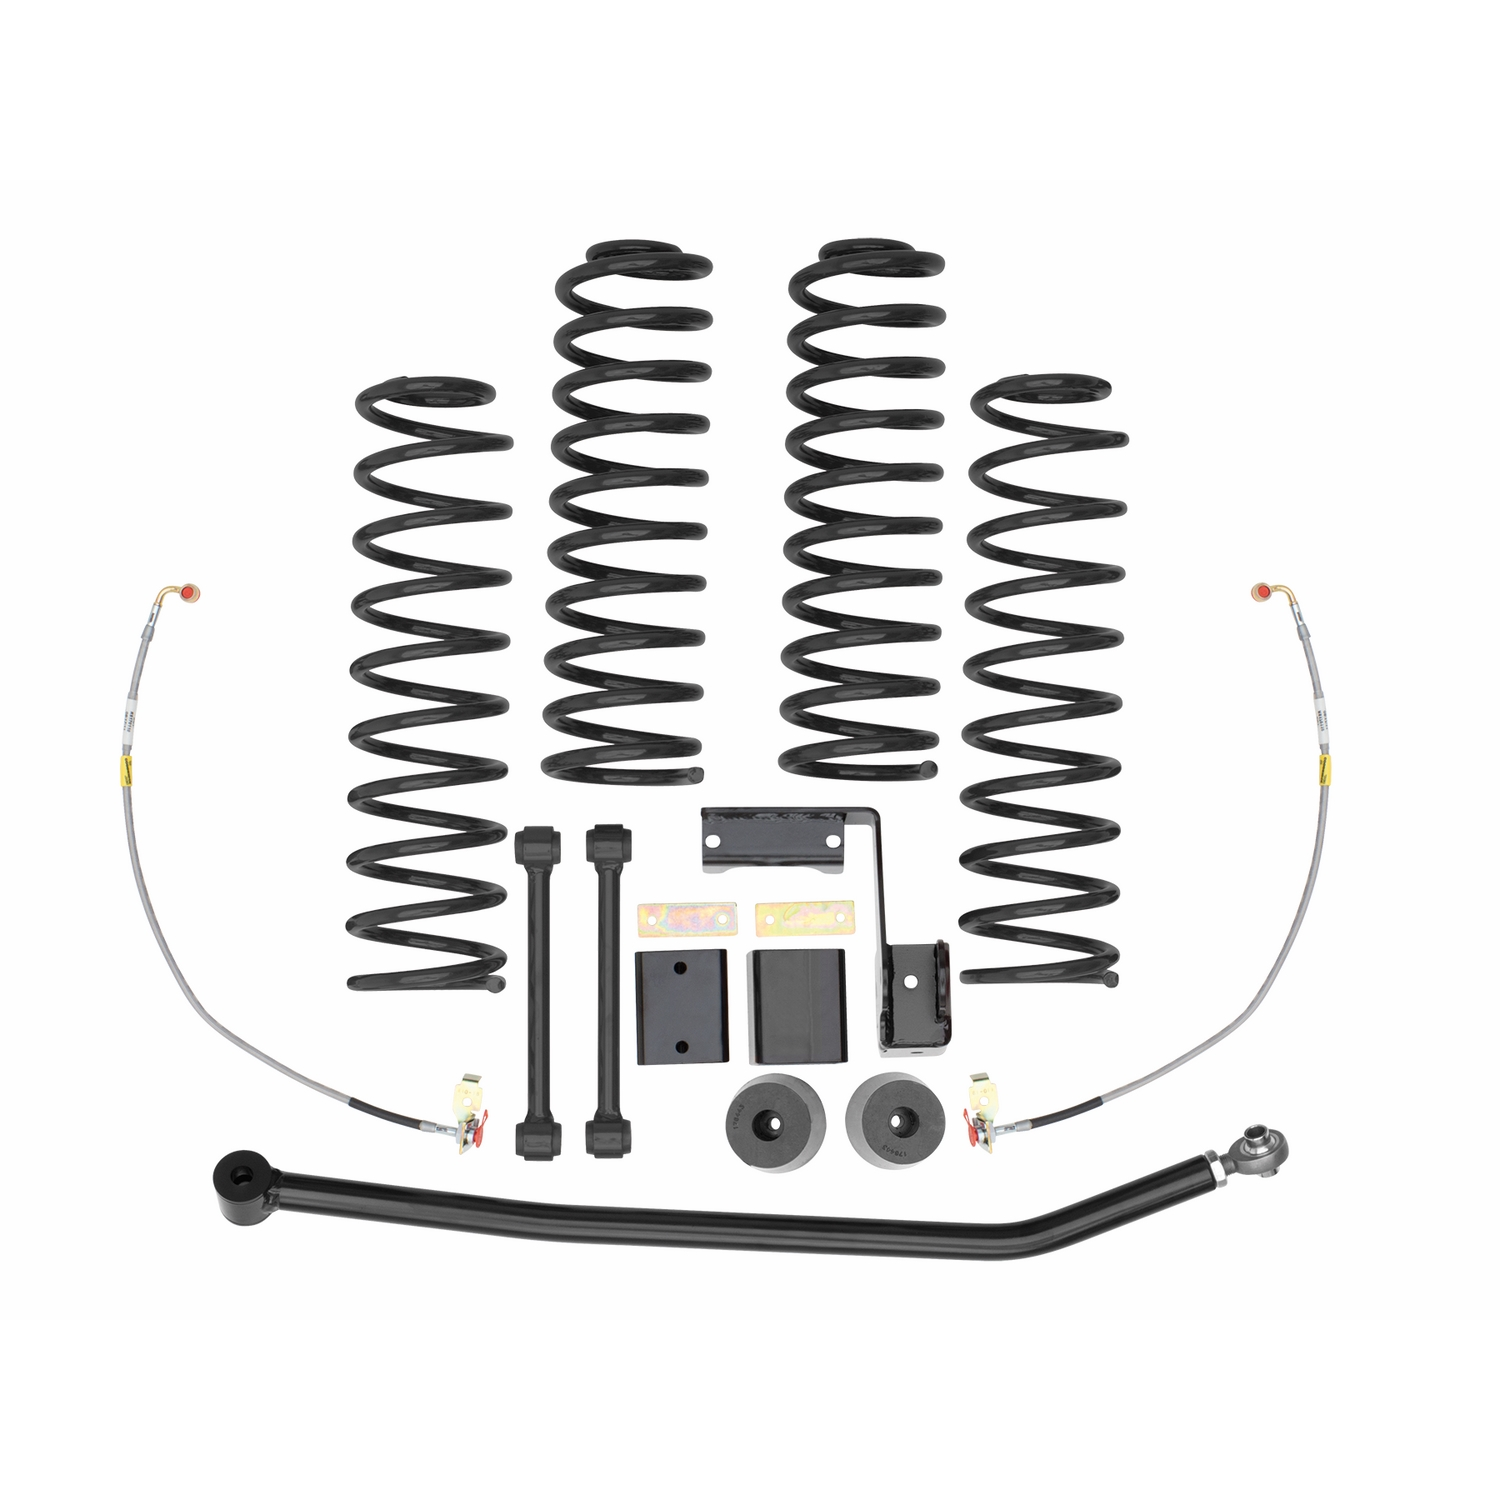 RS6592 Rancho Lift Kit Component Component For RS6592K Series Lift Kits